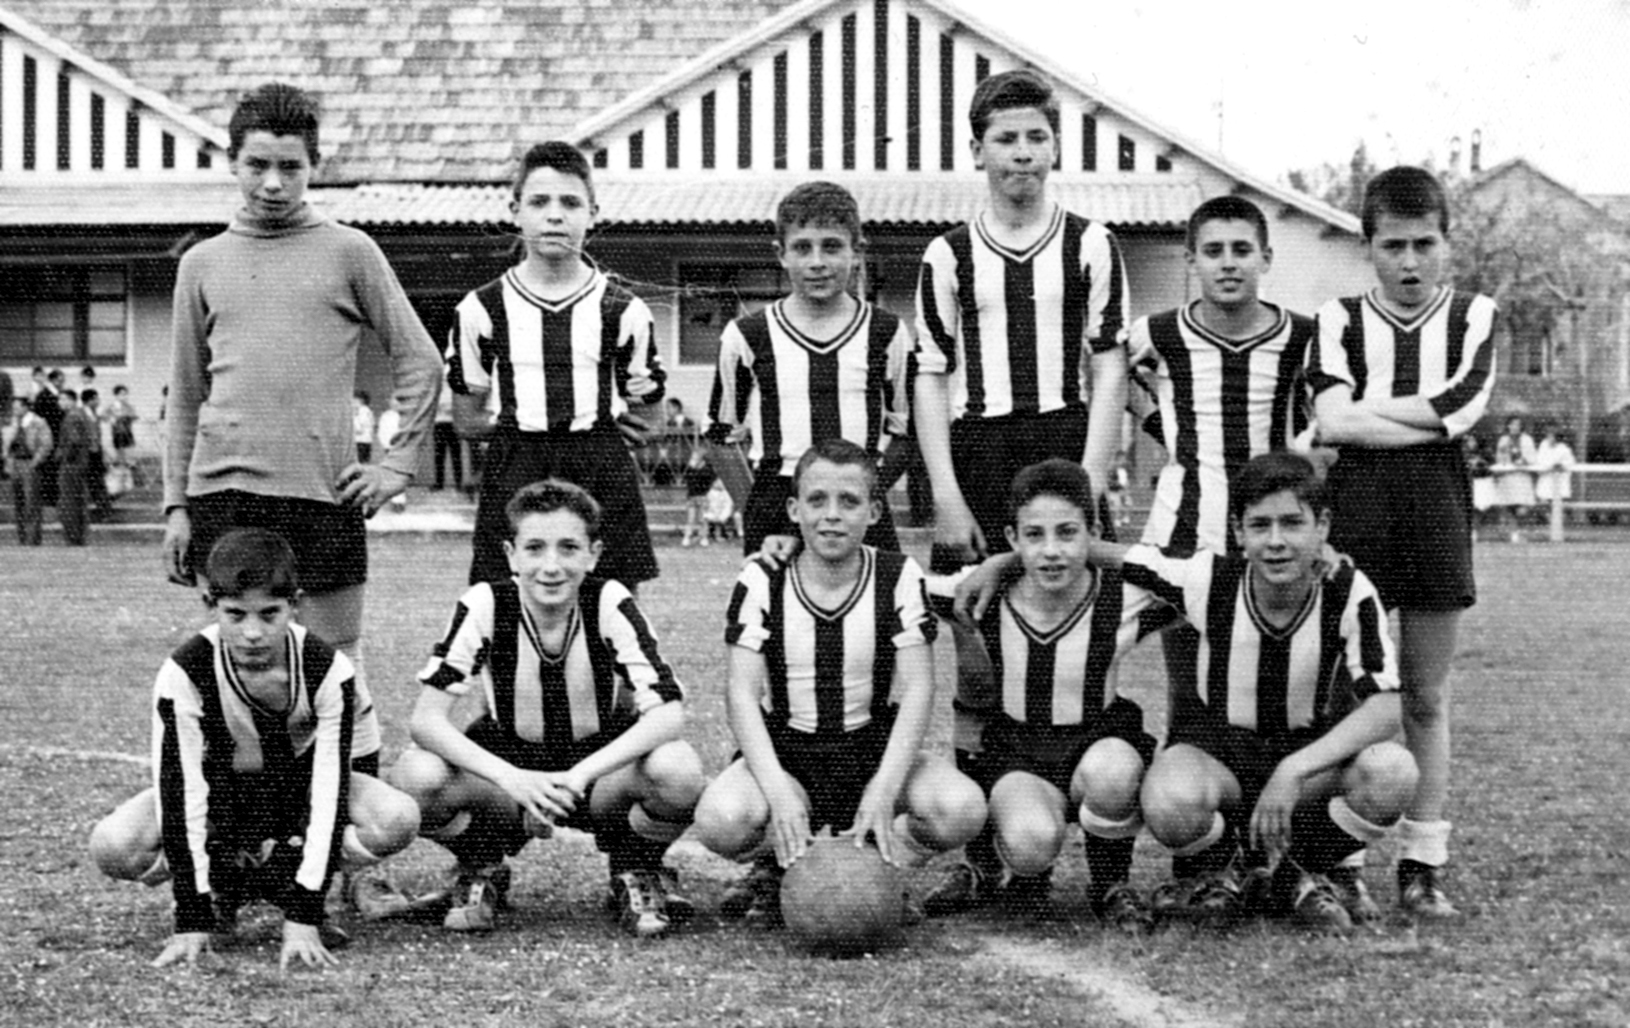 Children's football team of CD Borgonyà, 1961.